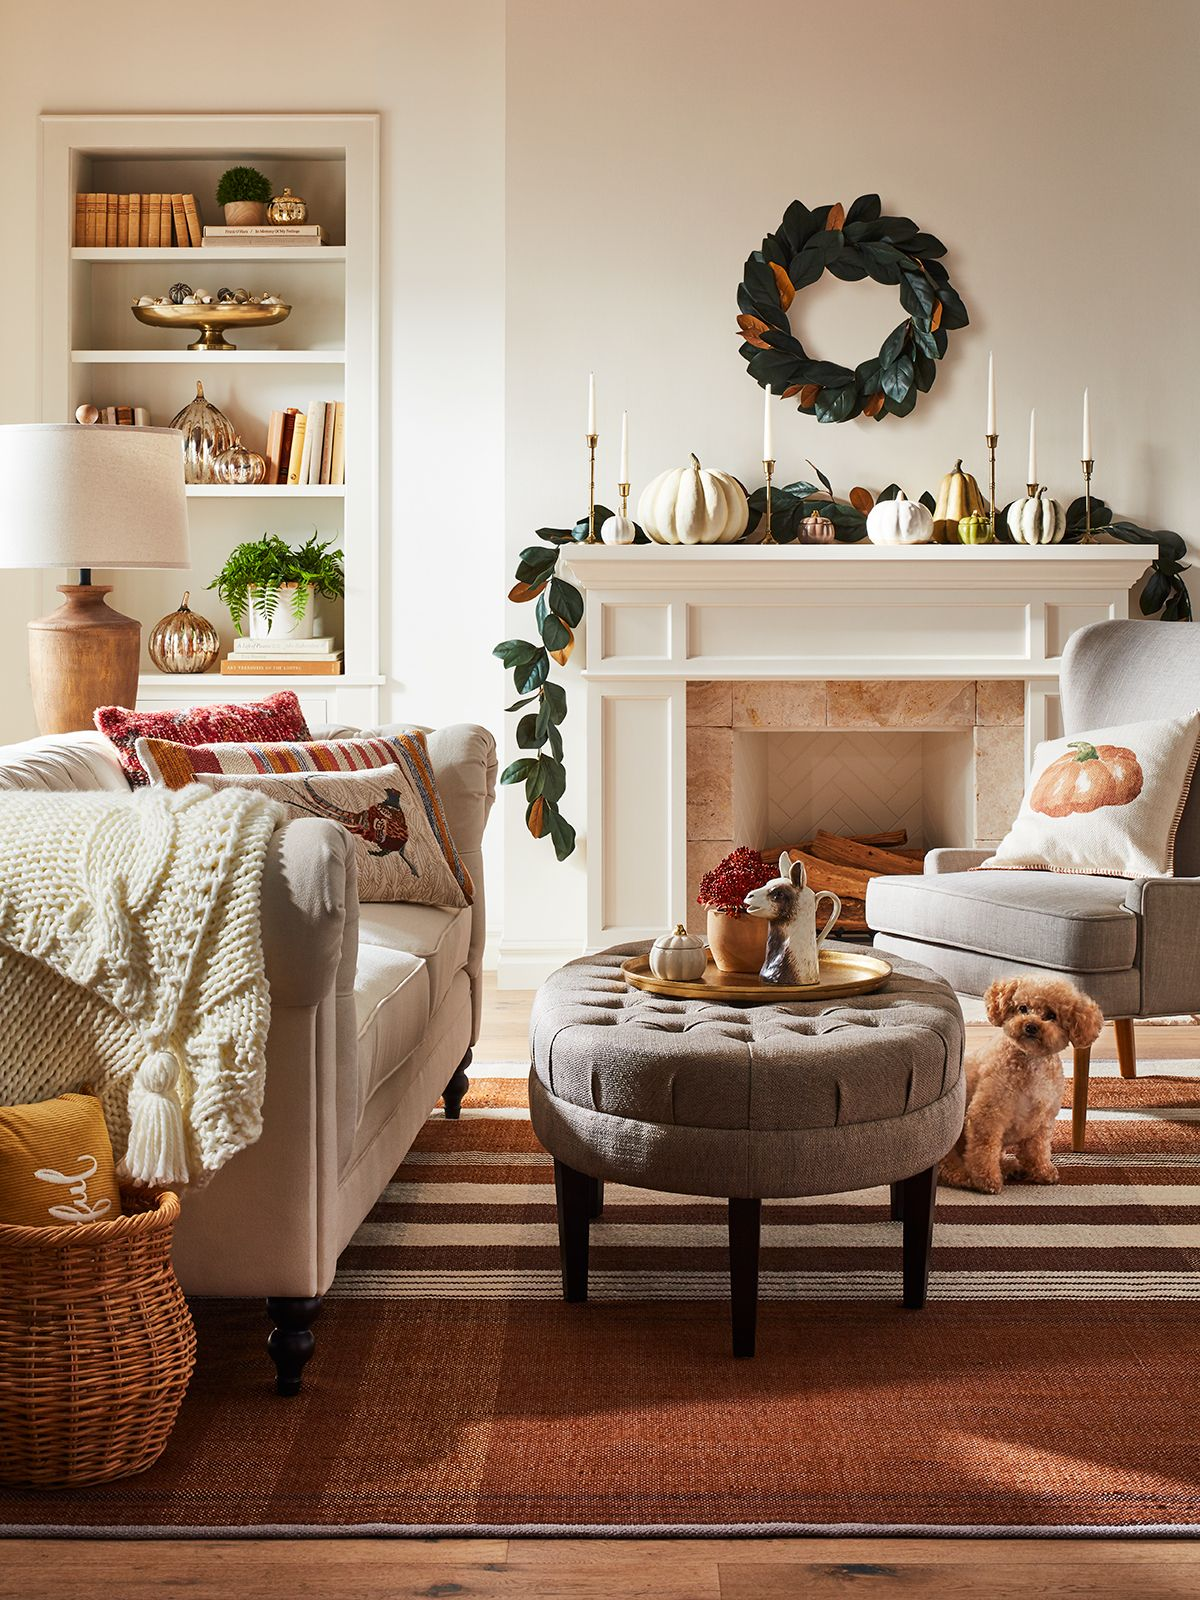 Target's New Fall Collections Give an Updated Spin on Classic Autumn Decor